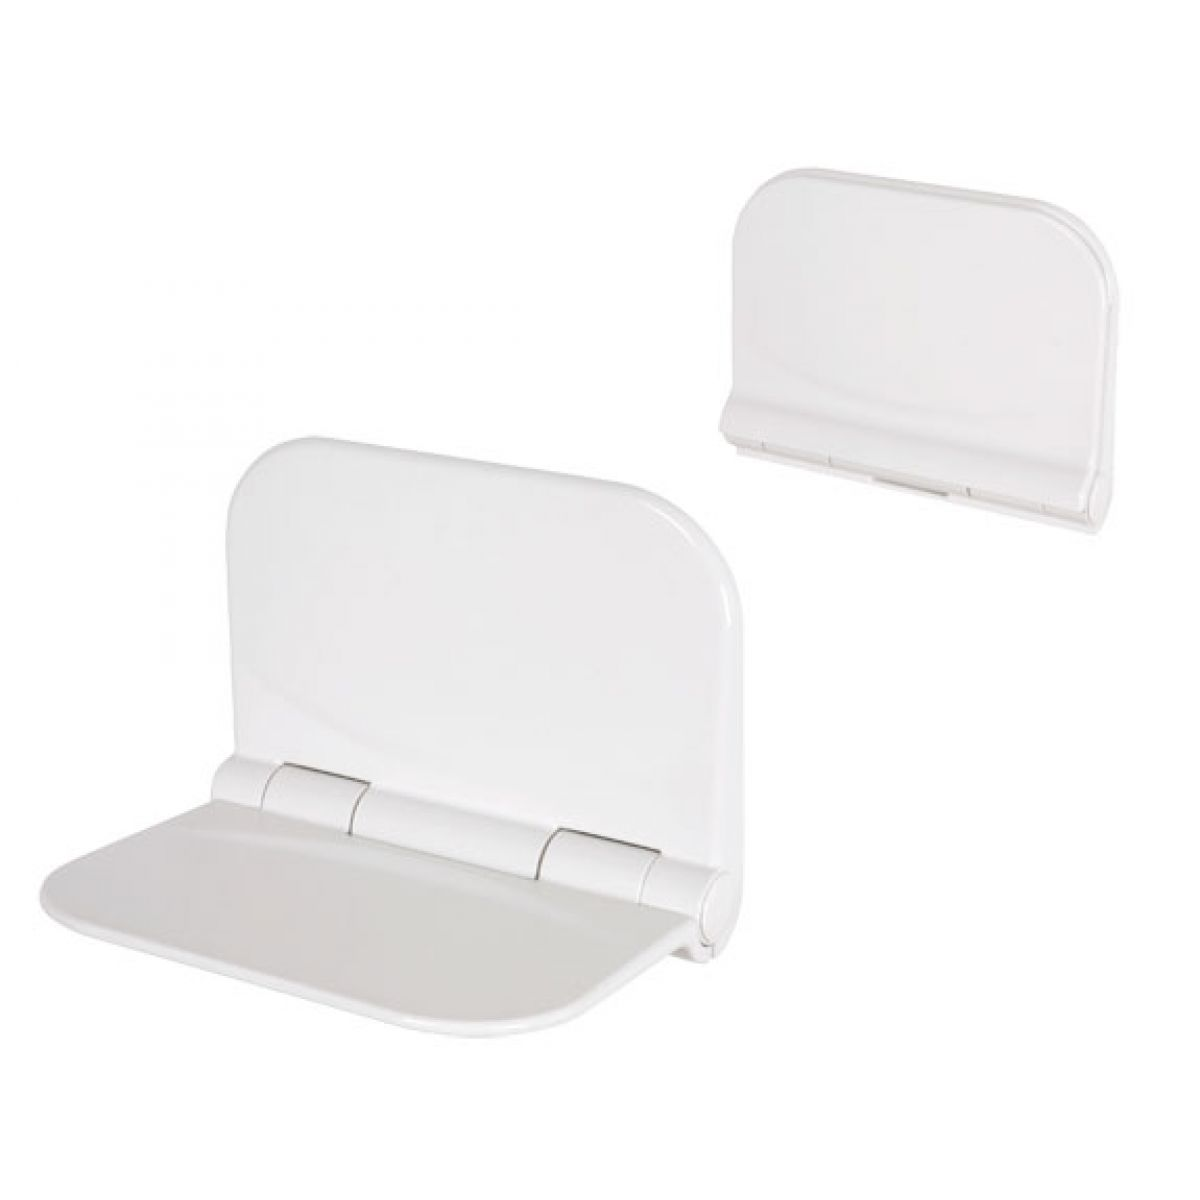 Folding Shower Seat. Open and closed positions shown.